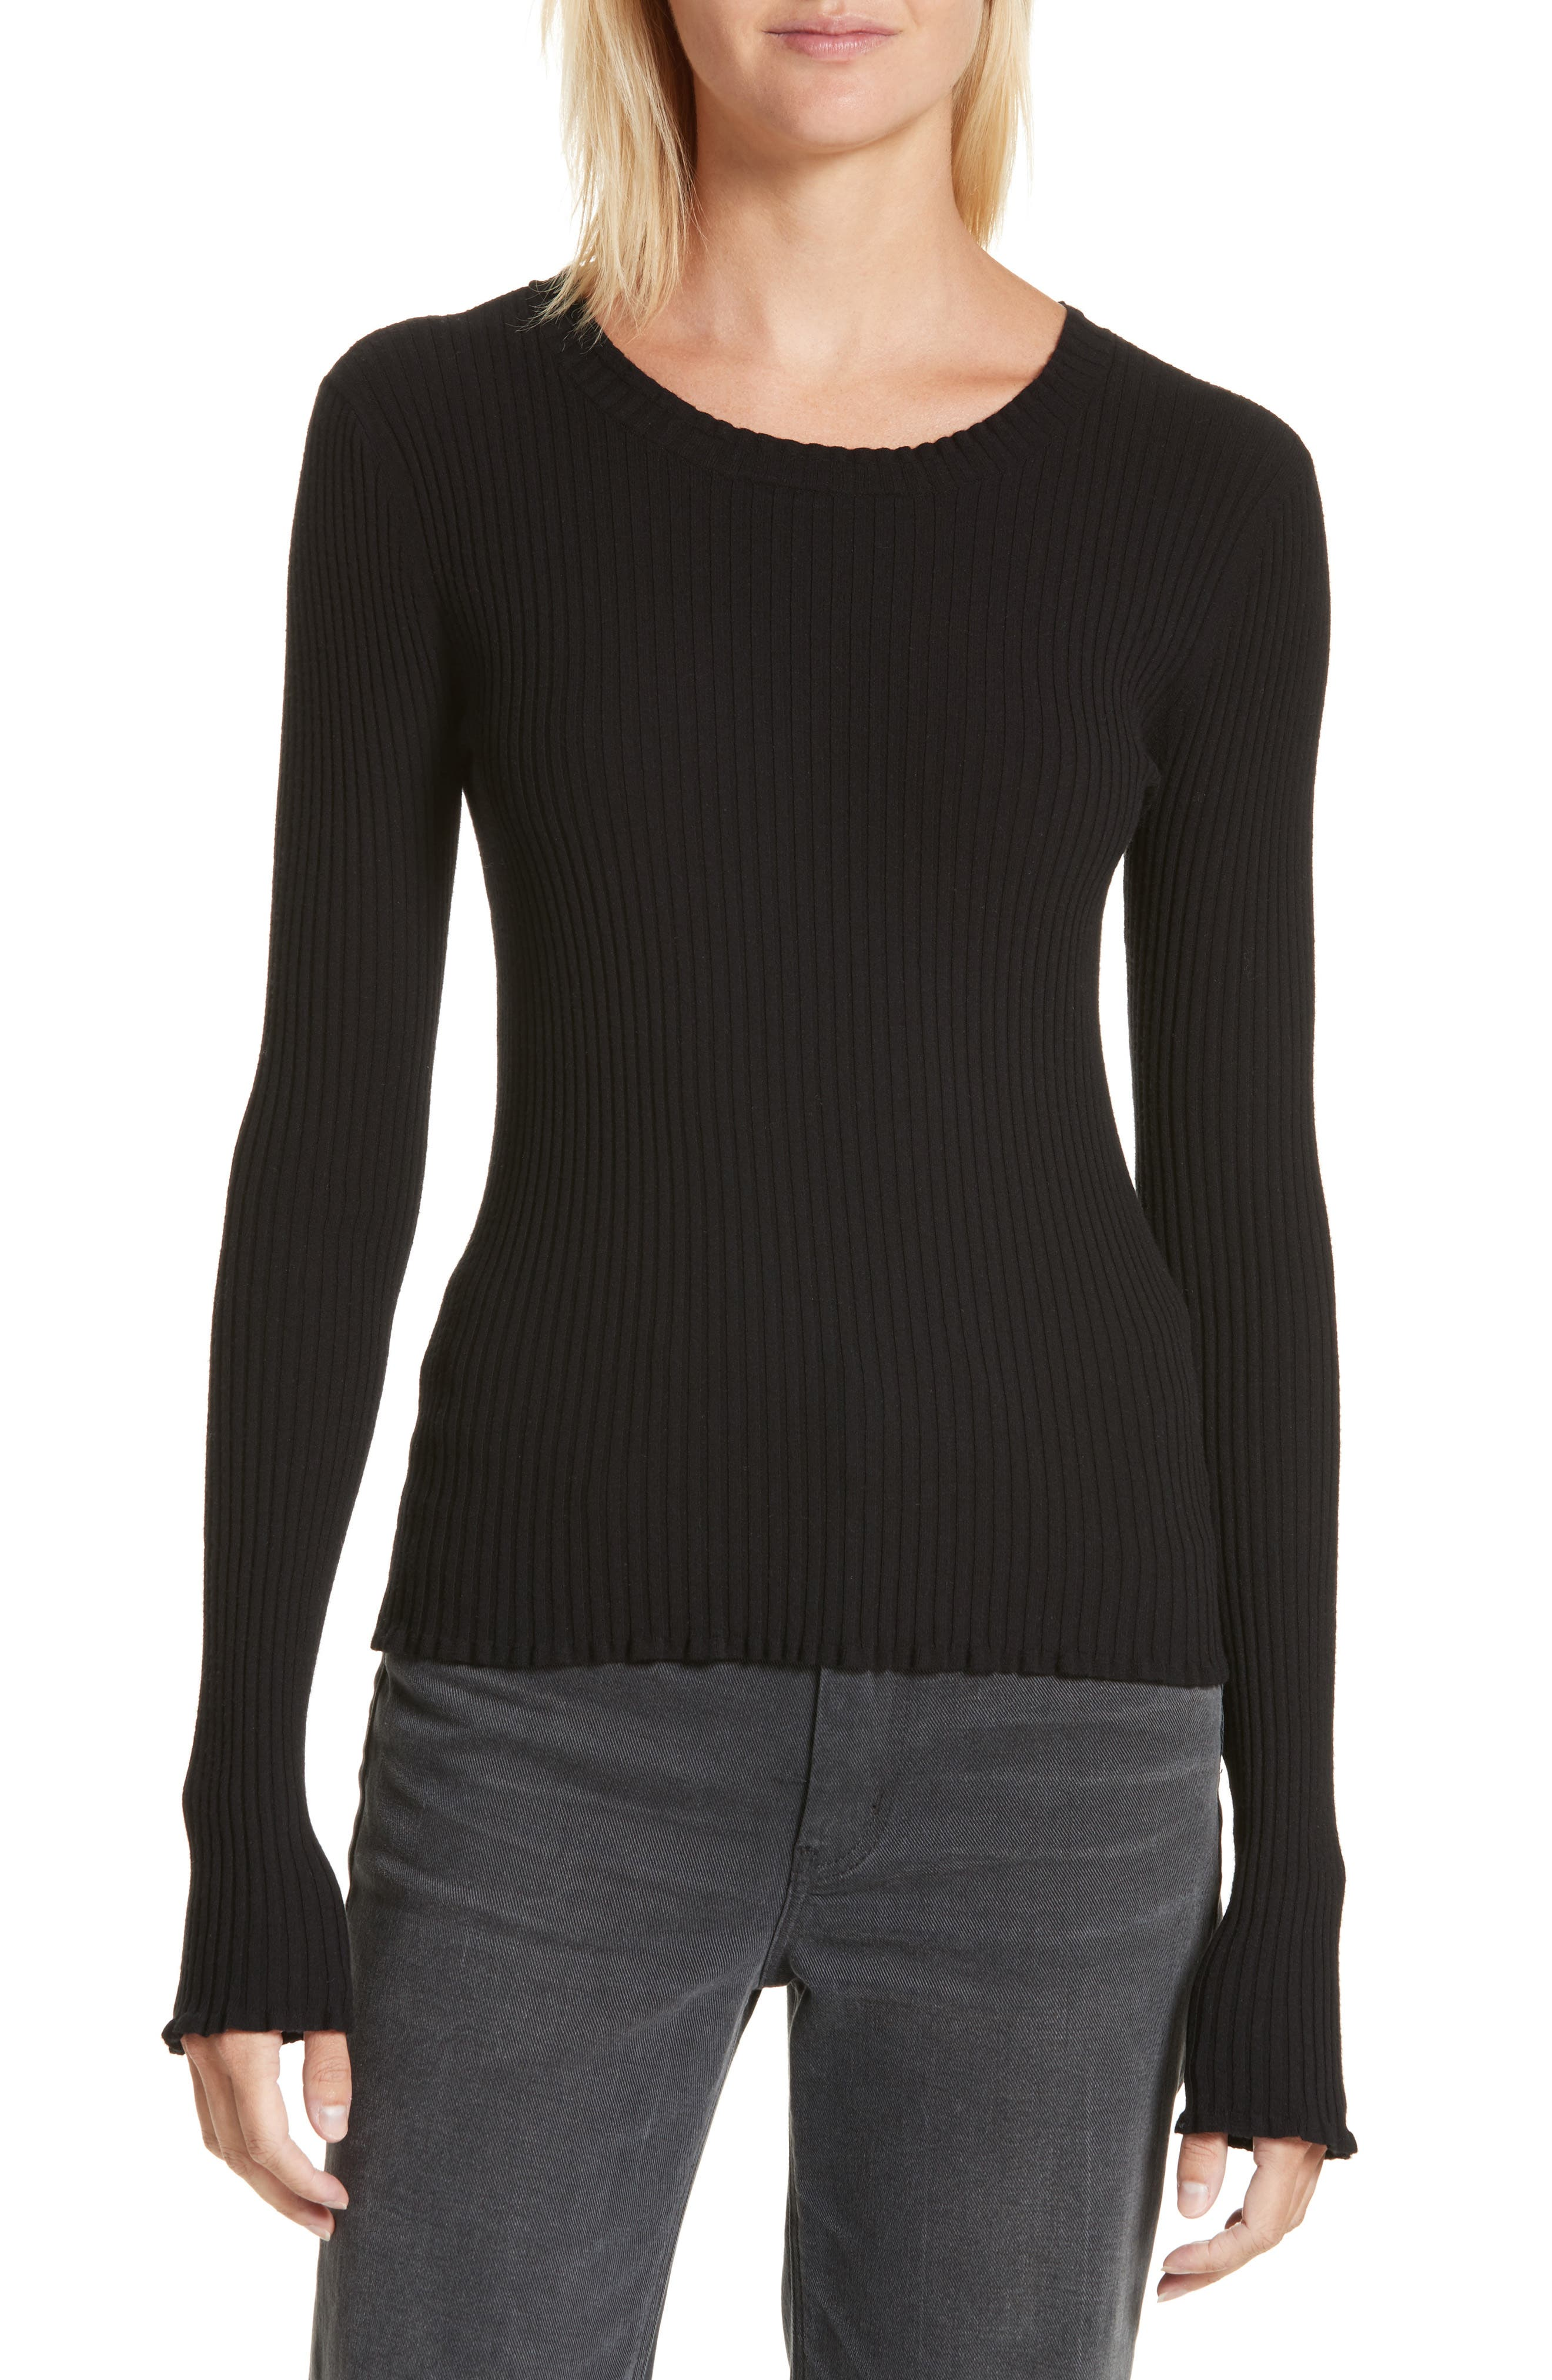 Alternate Image 1 Selected - Rebecca Taylor Rib Knit Scoop Neck Sweater